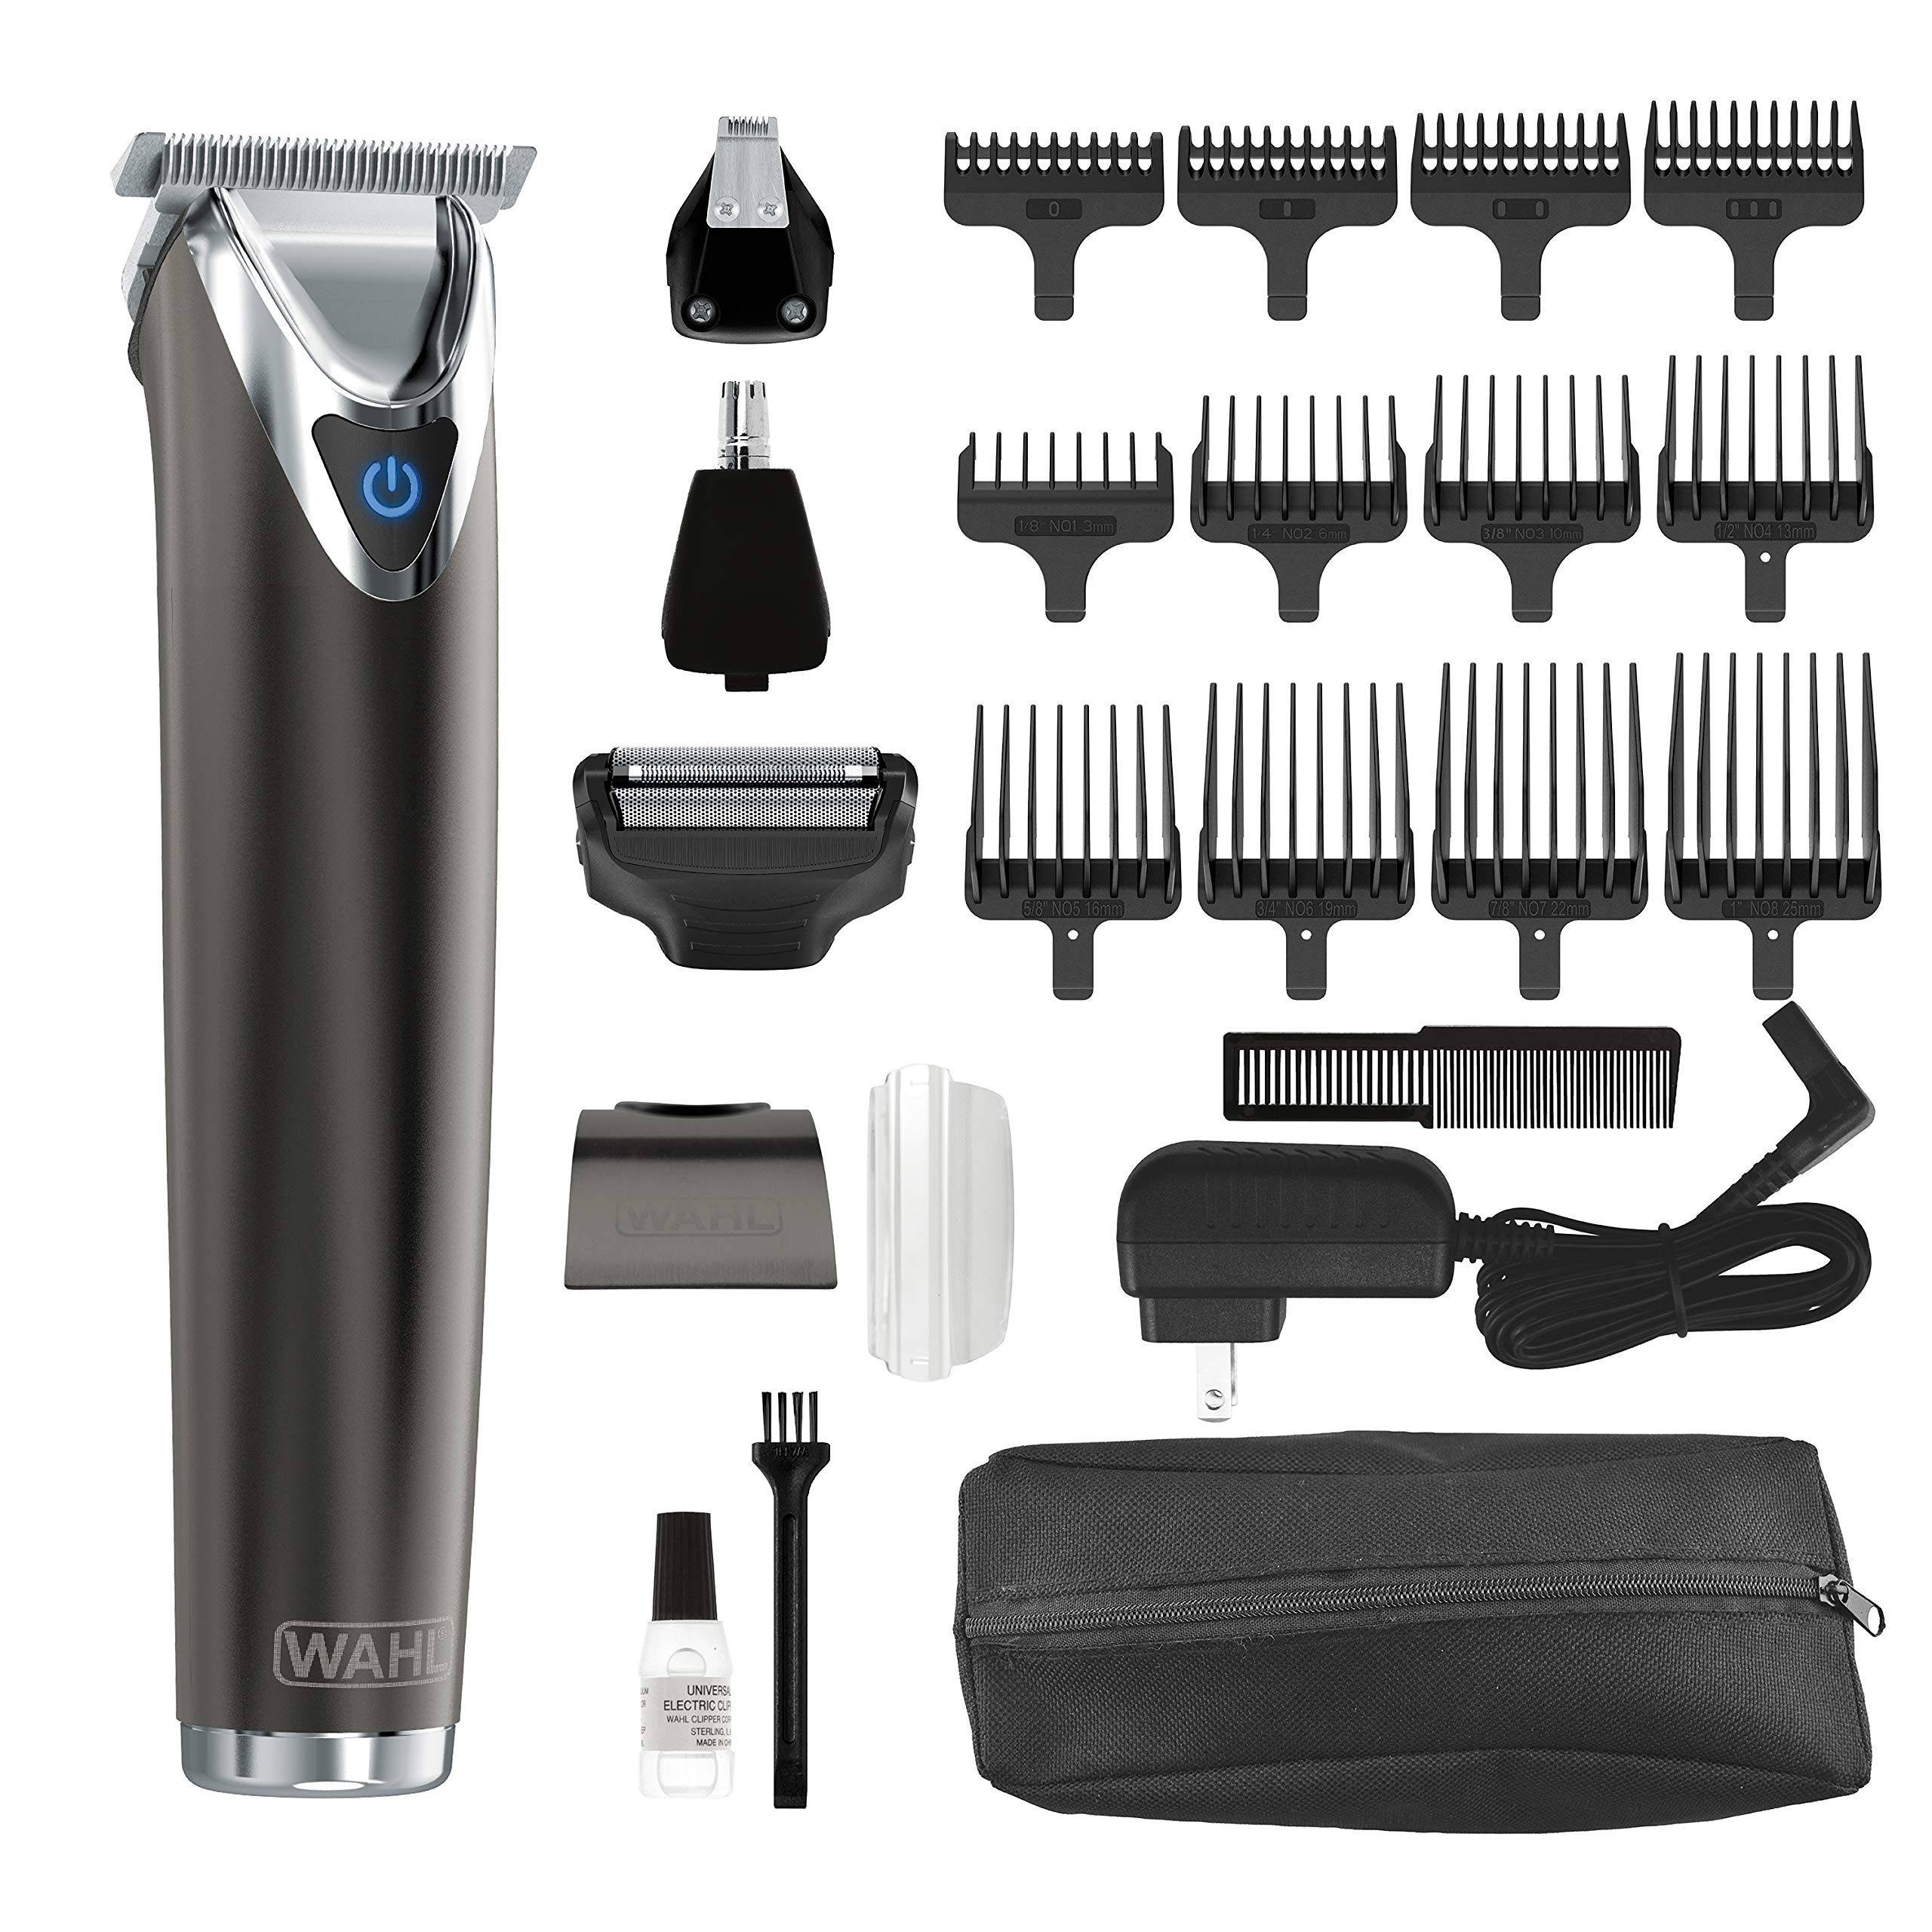 Wahl Clipper Slate Stainless Steel Lithium Ion Plus Beard Trimmers for Men, Electric Shavers, Nose Ear Trimmers, Rechargeable All in One Men's Grooming Kit, by the Brand used by Professionals, #9864